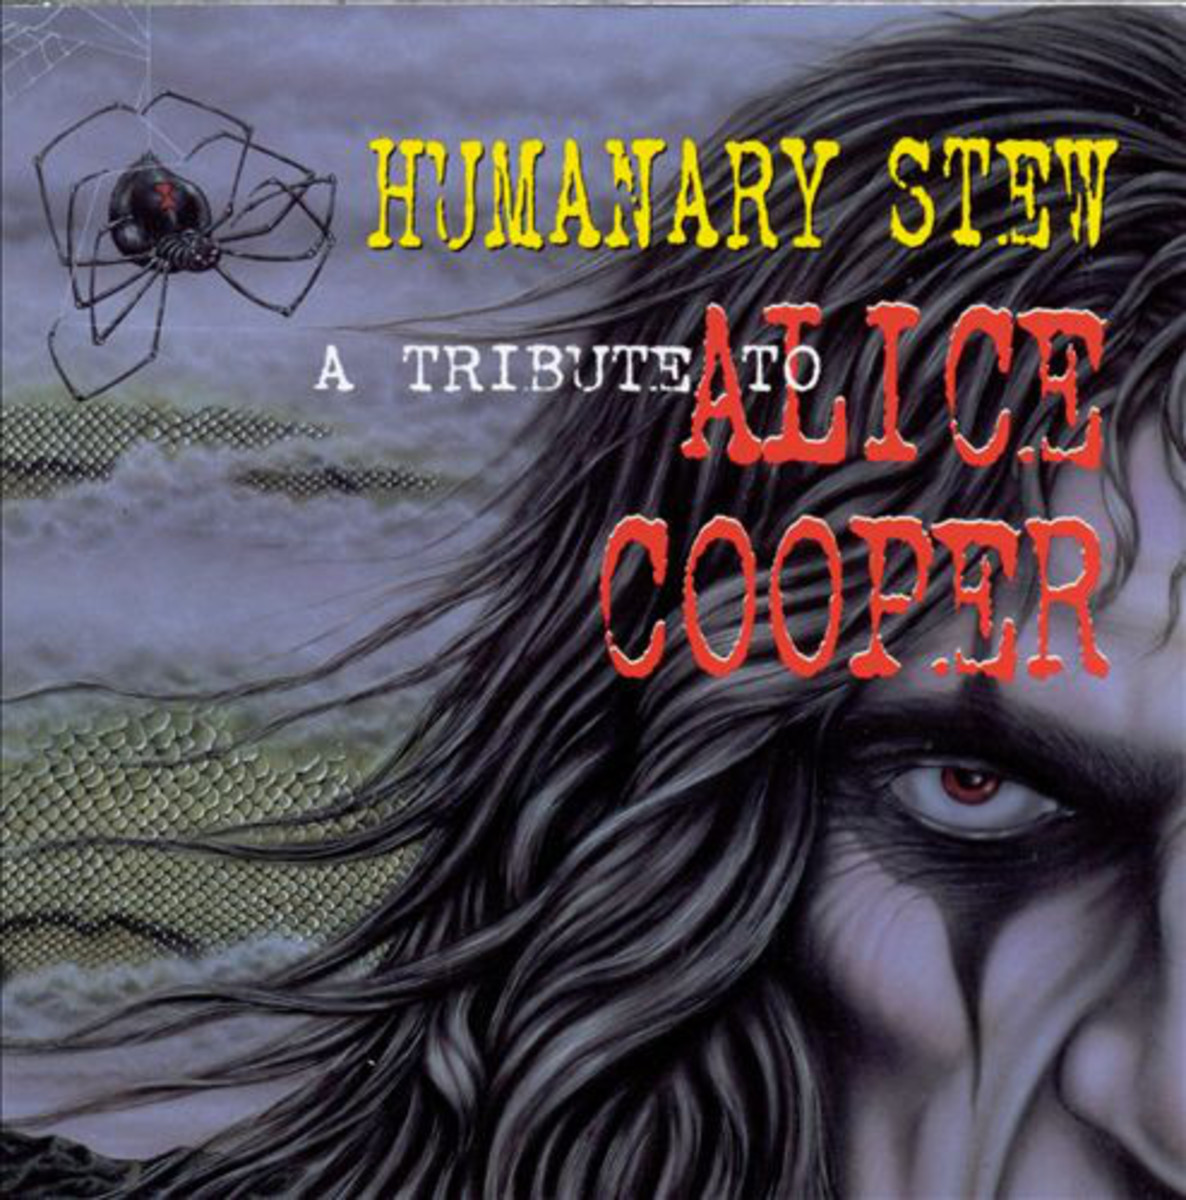 """Humanary Stew: A Tribute to Alice Cooper"" Album Review"